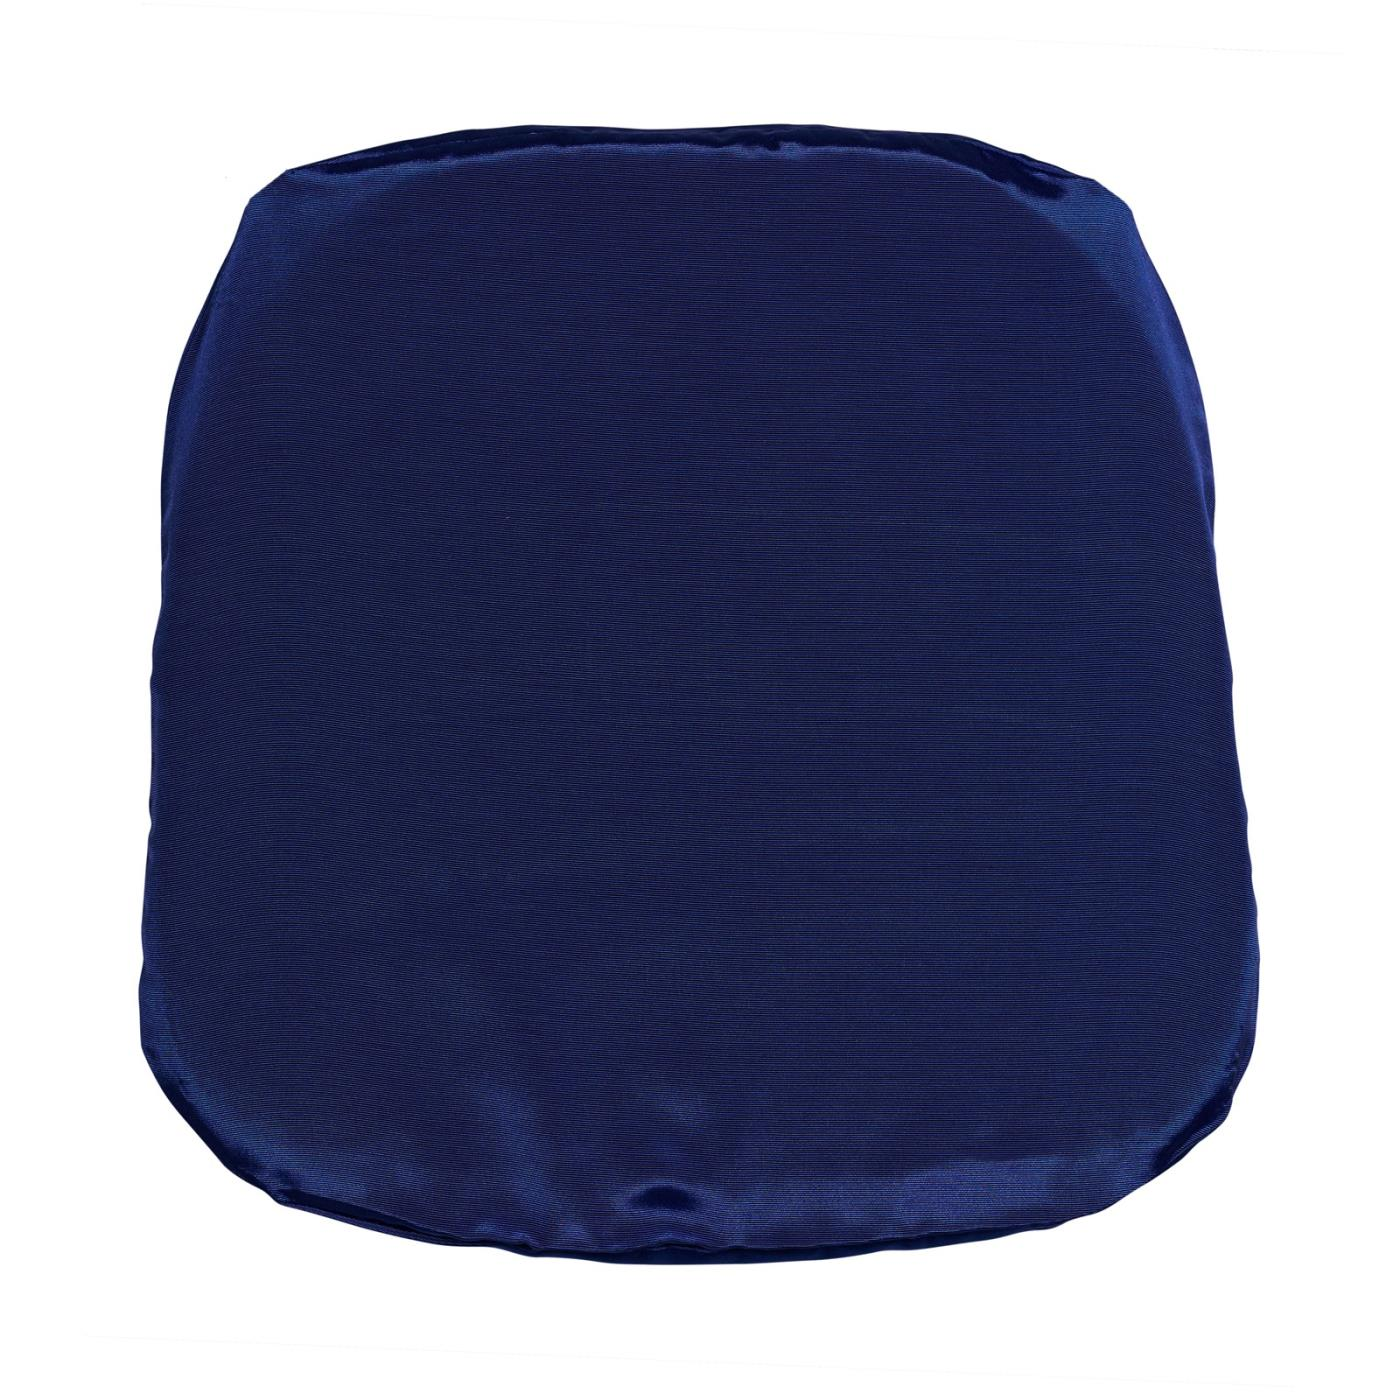 Bengaline Seat Cushion - Royal Blue